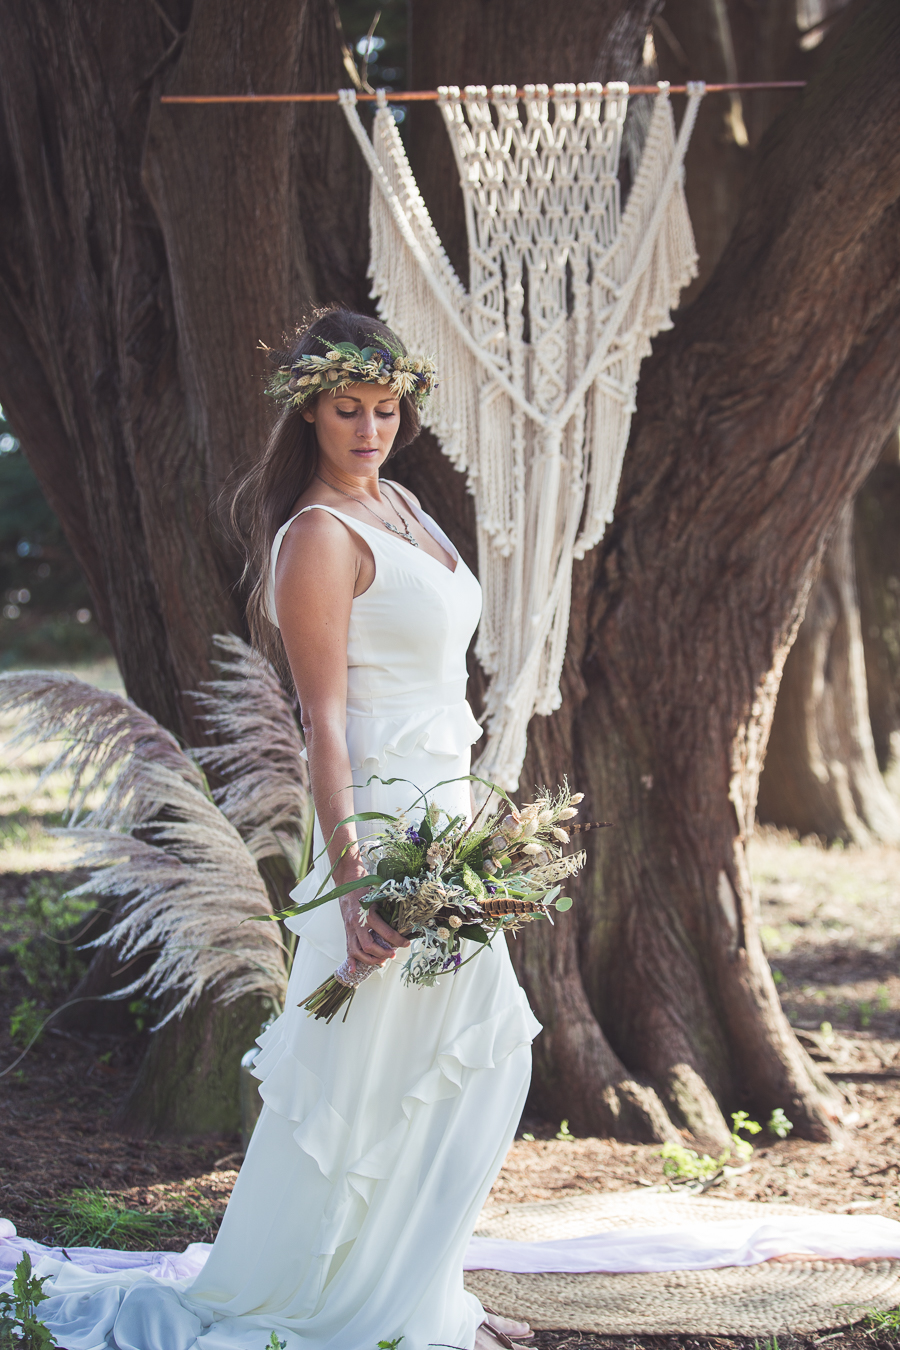 Beach boho wedding styling ideas from the UK, image credit Katie Mortimore (17)